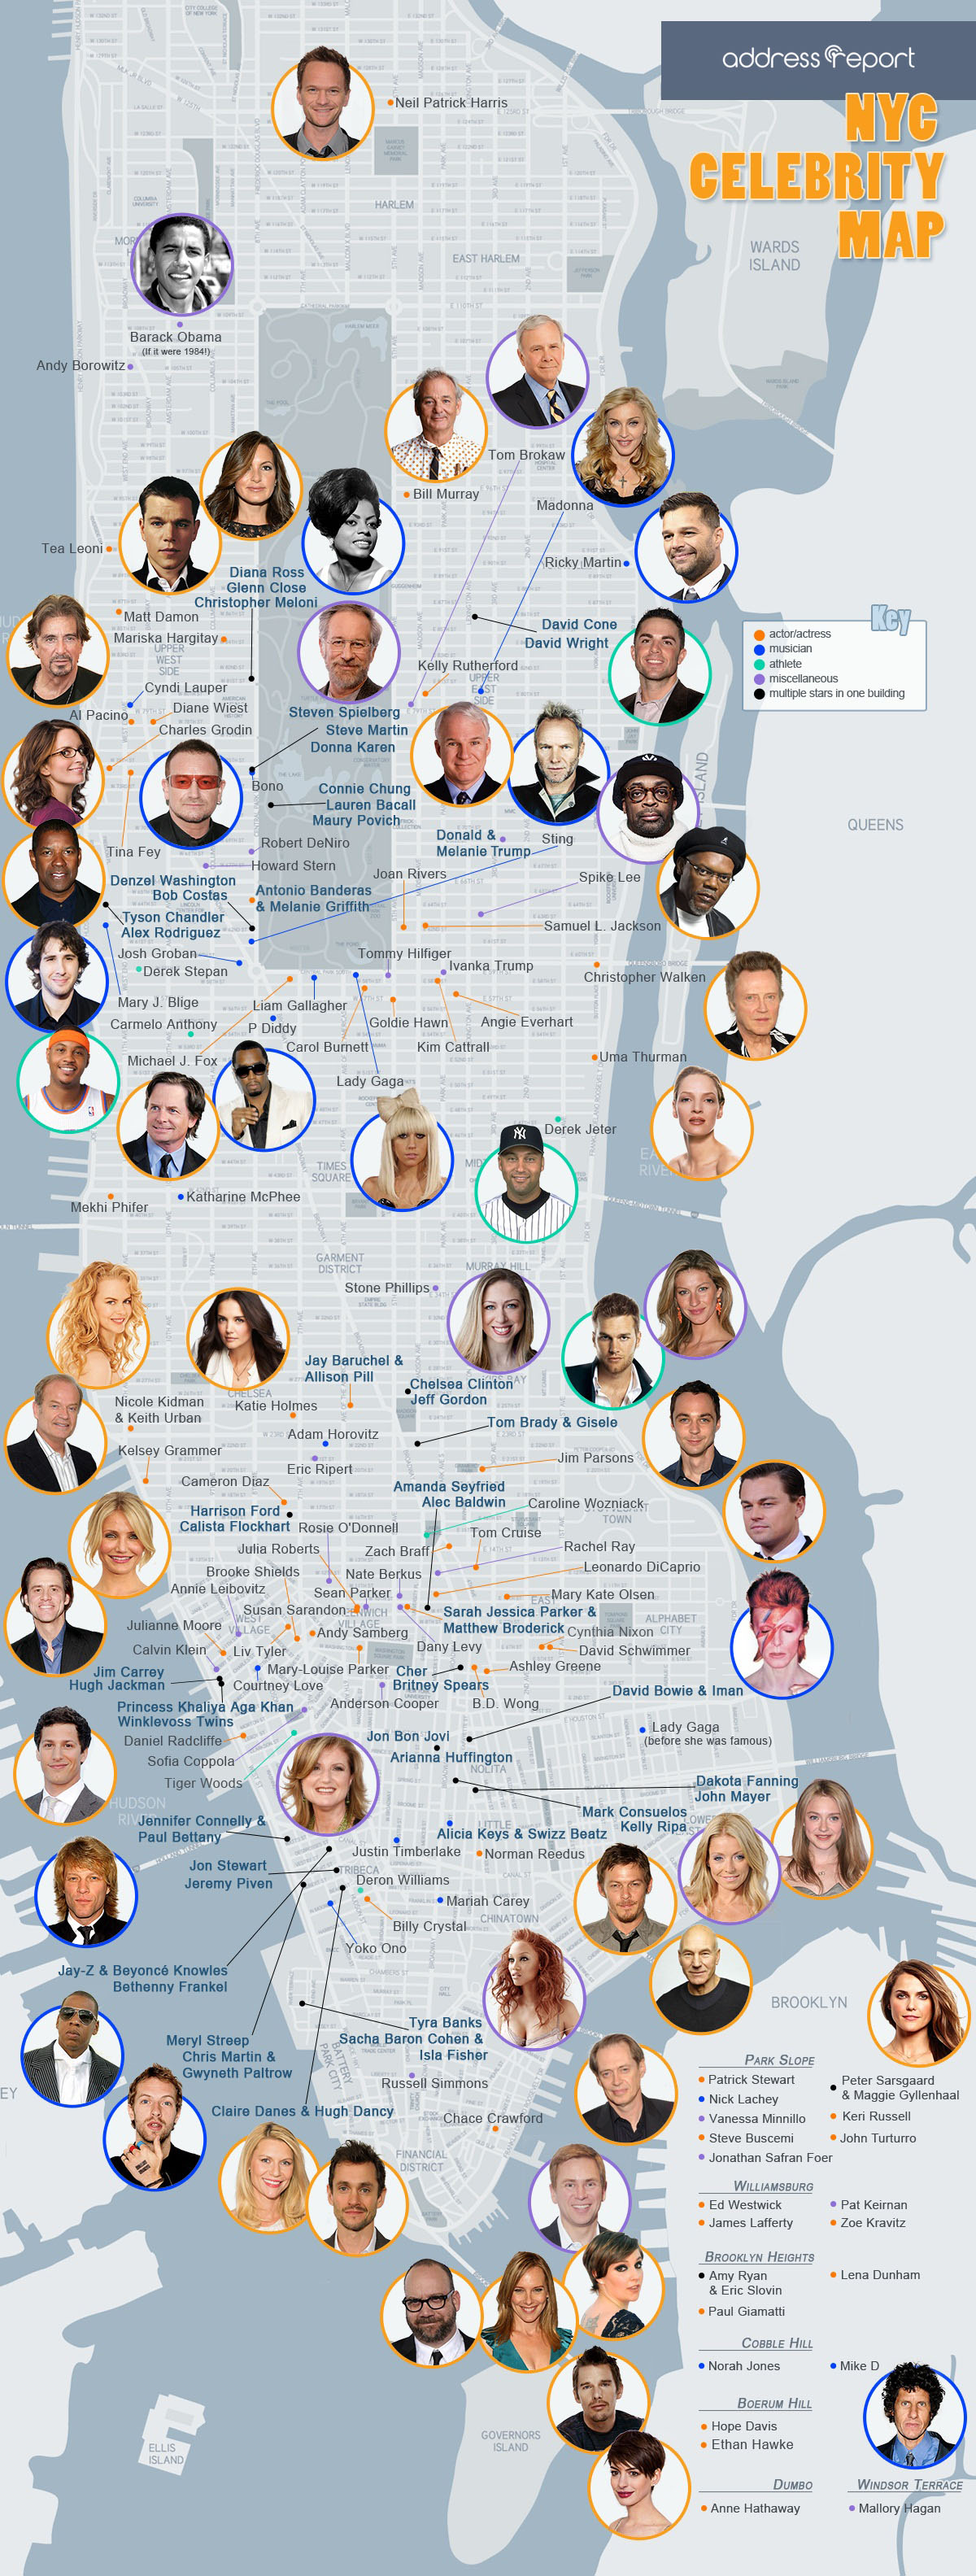 Murray Hill Nyc Map.The 2014 Nyc Celebrity Star Map Infographic Addressreport Blog